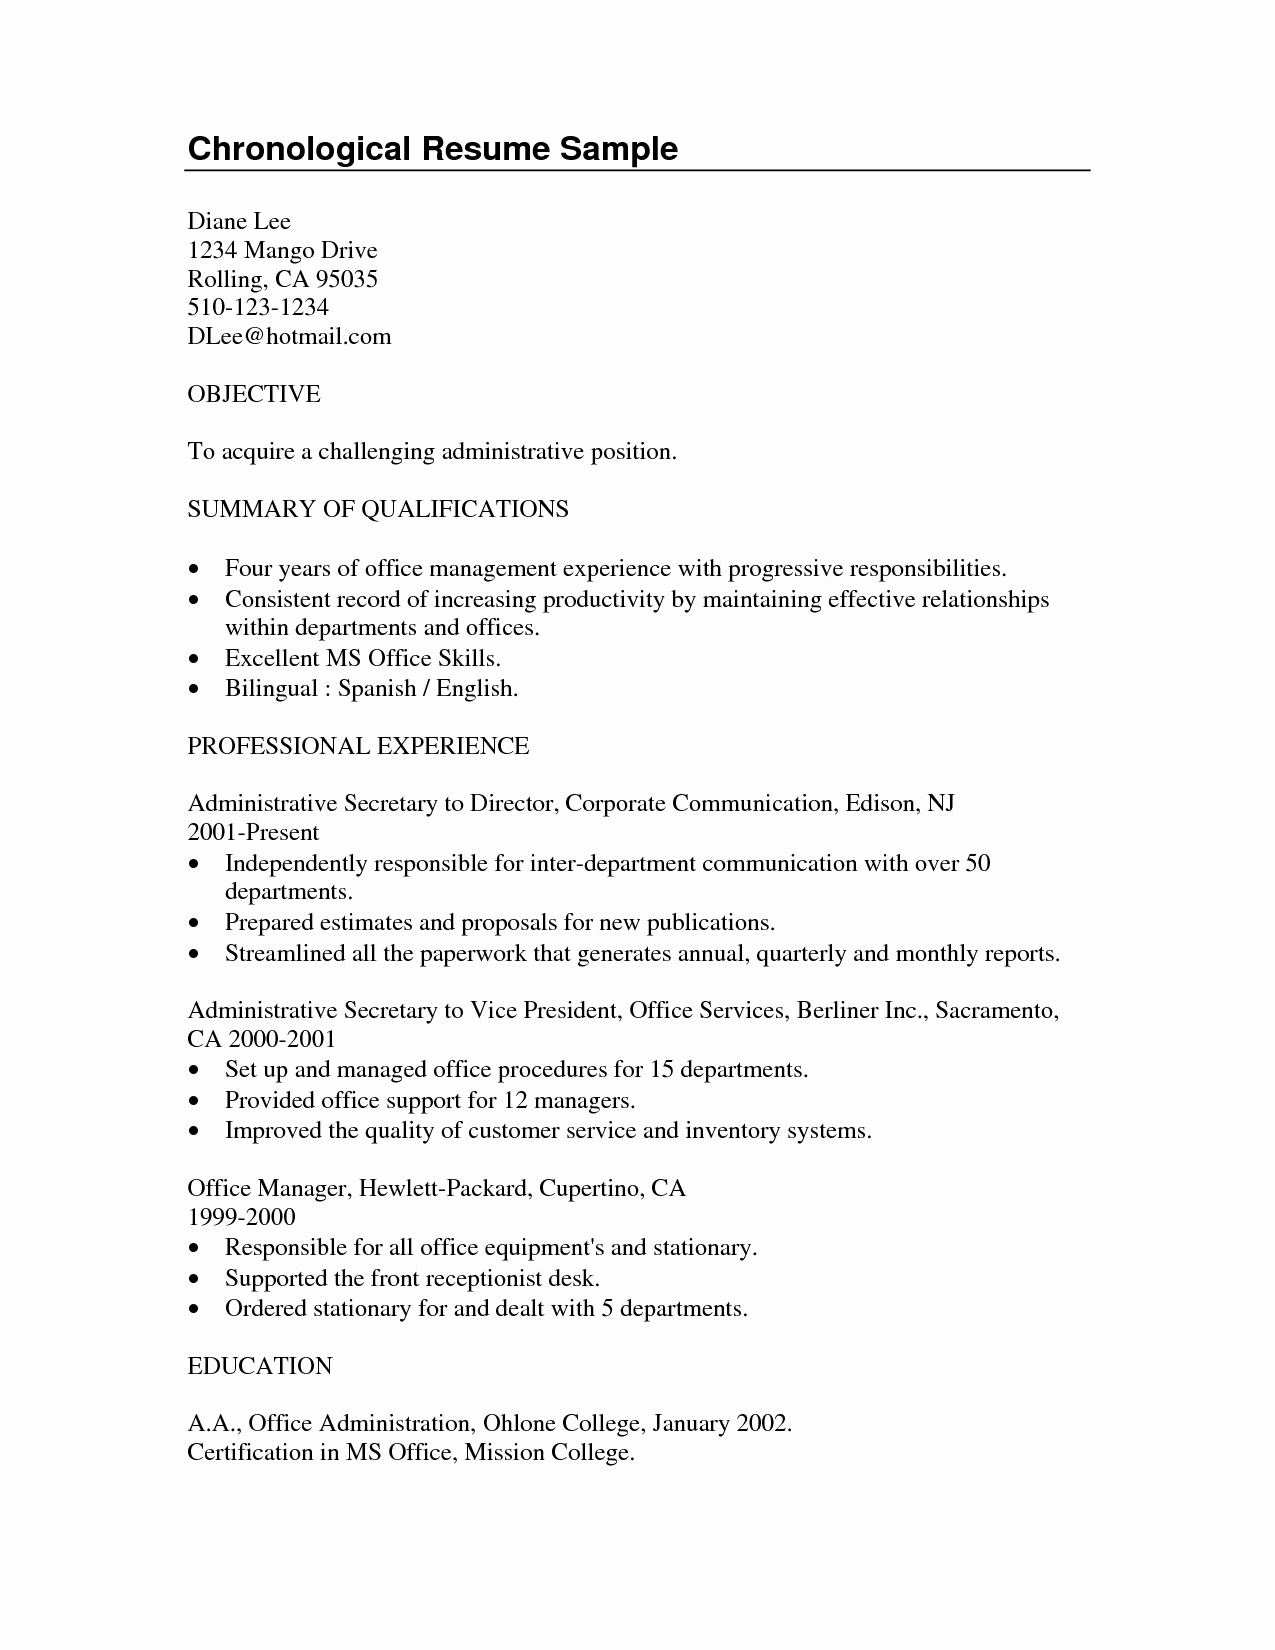 Resume Samples for College Student Cover Letter Samples